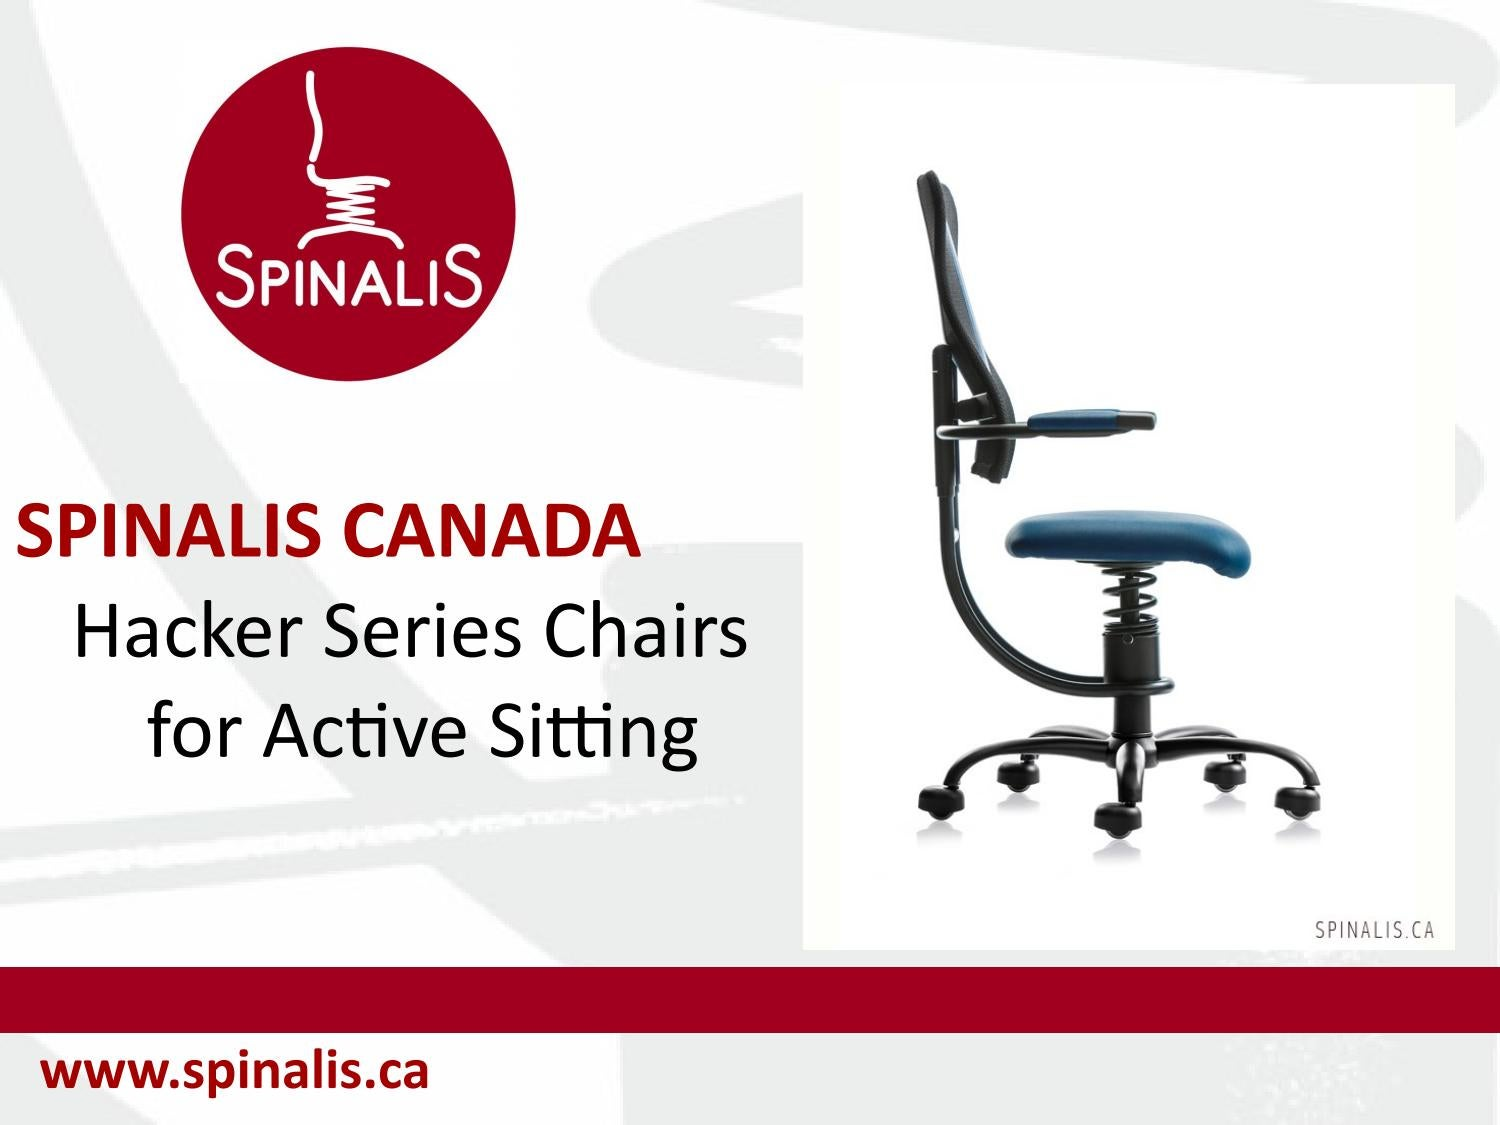 Active Sitting Chair Spinalis Canada Hacker Series Chairs For Active Sitting